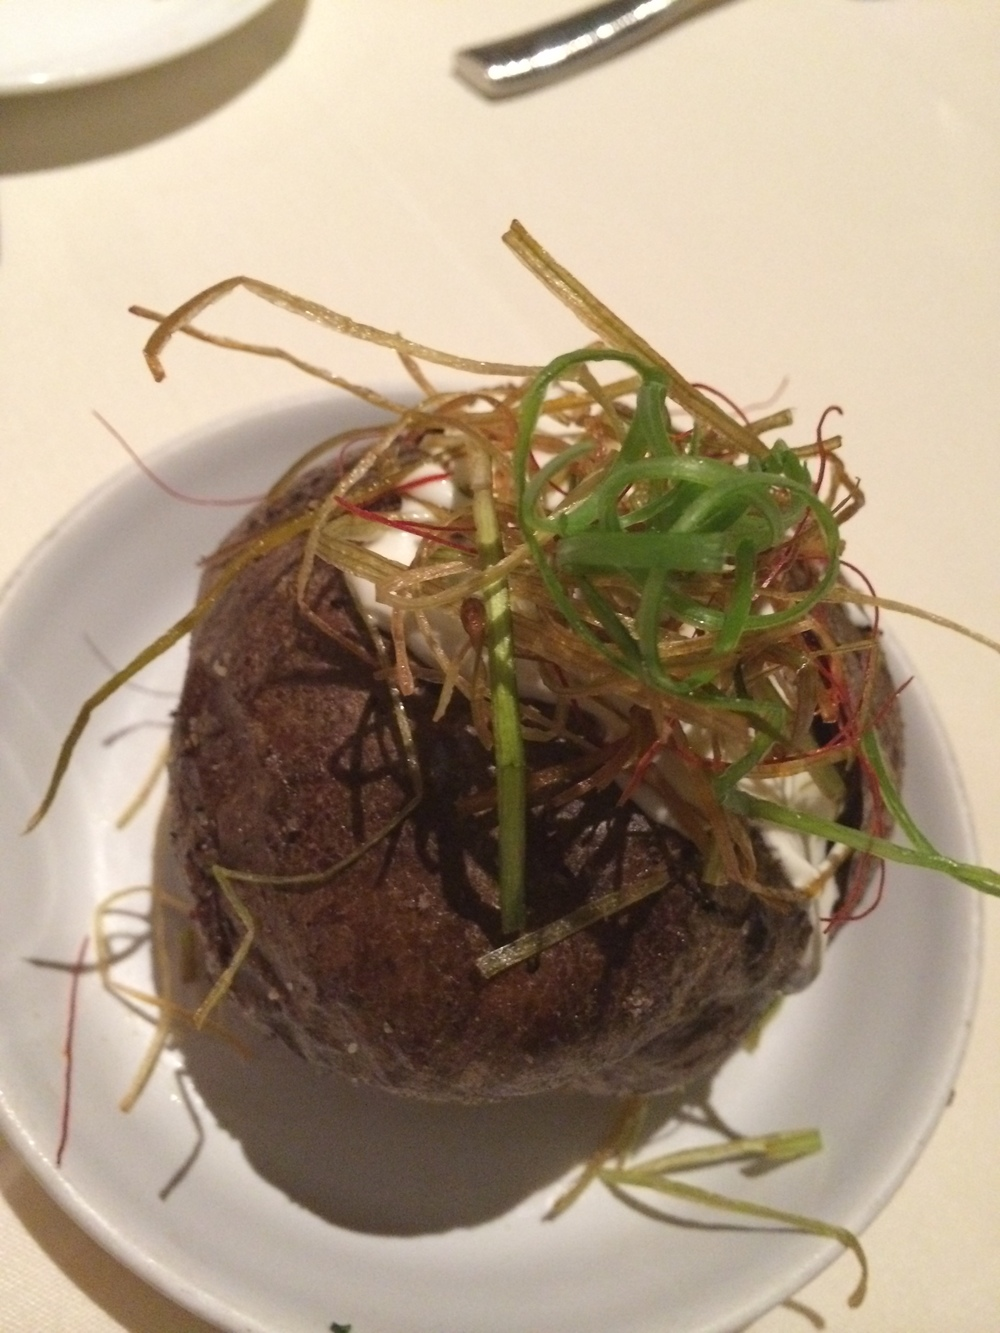 Baked Idaho potato.  I liked this as a counterpoint to all the rich truffle flavor